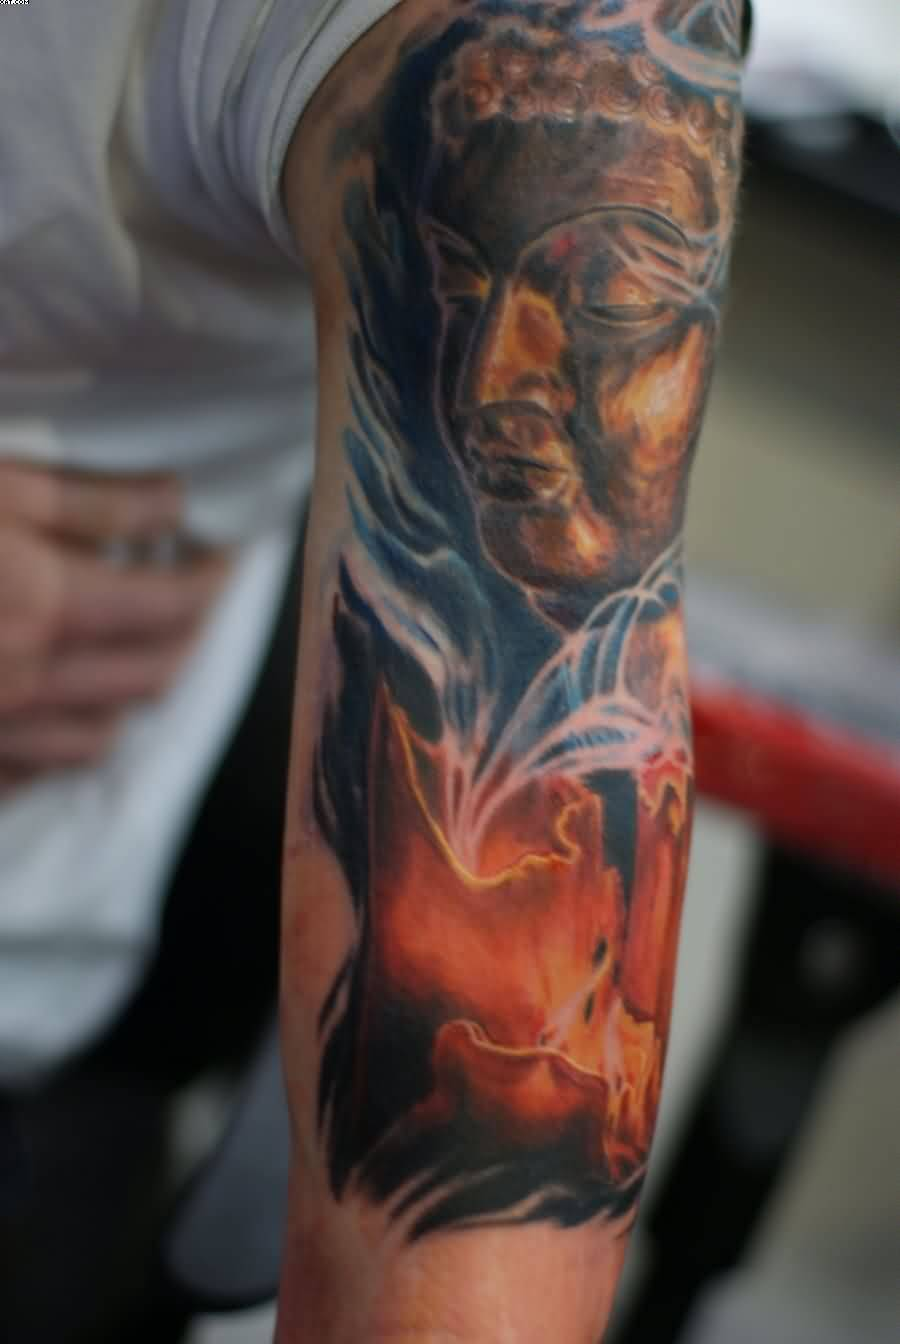 Stylish Buddha Face Tattoo For Men's Arm